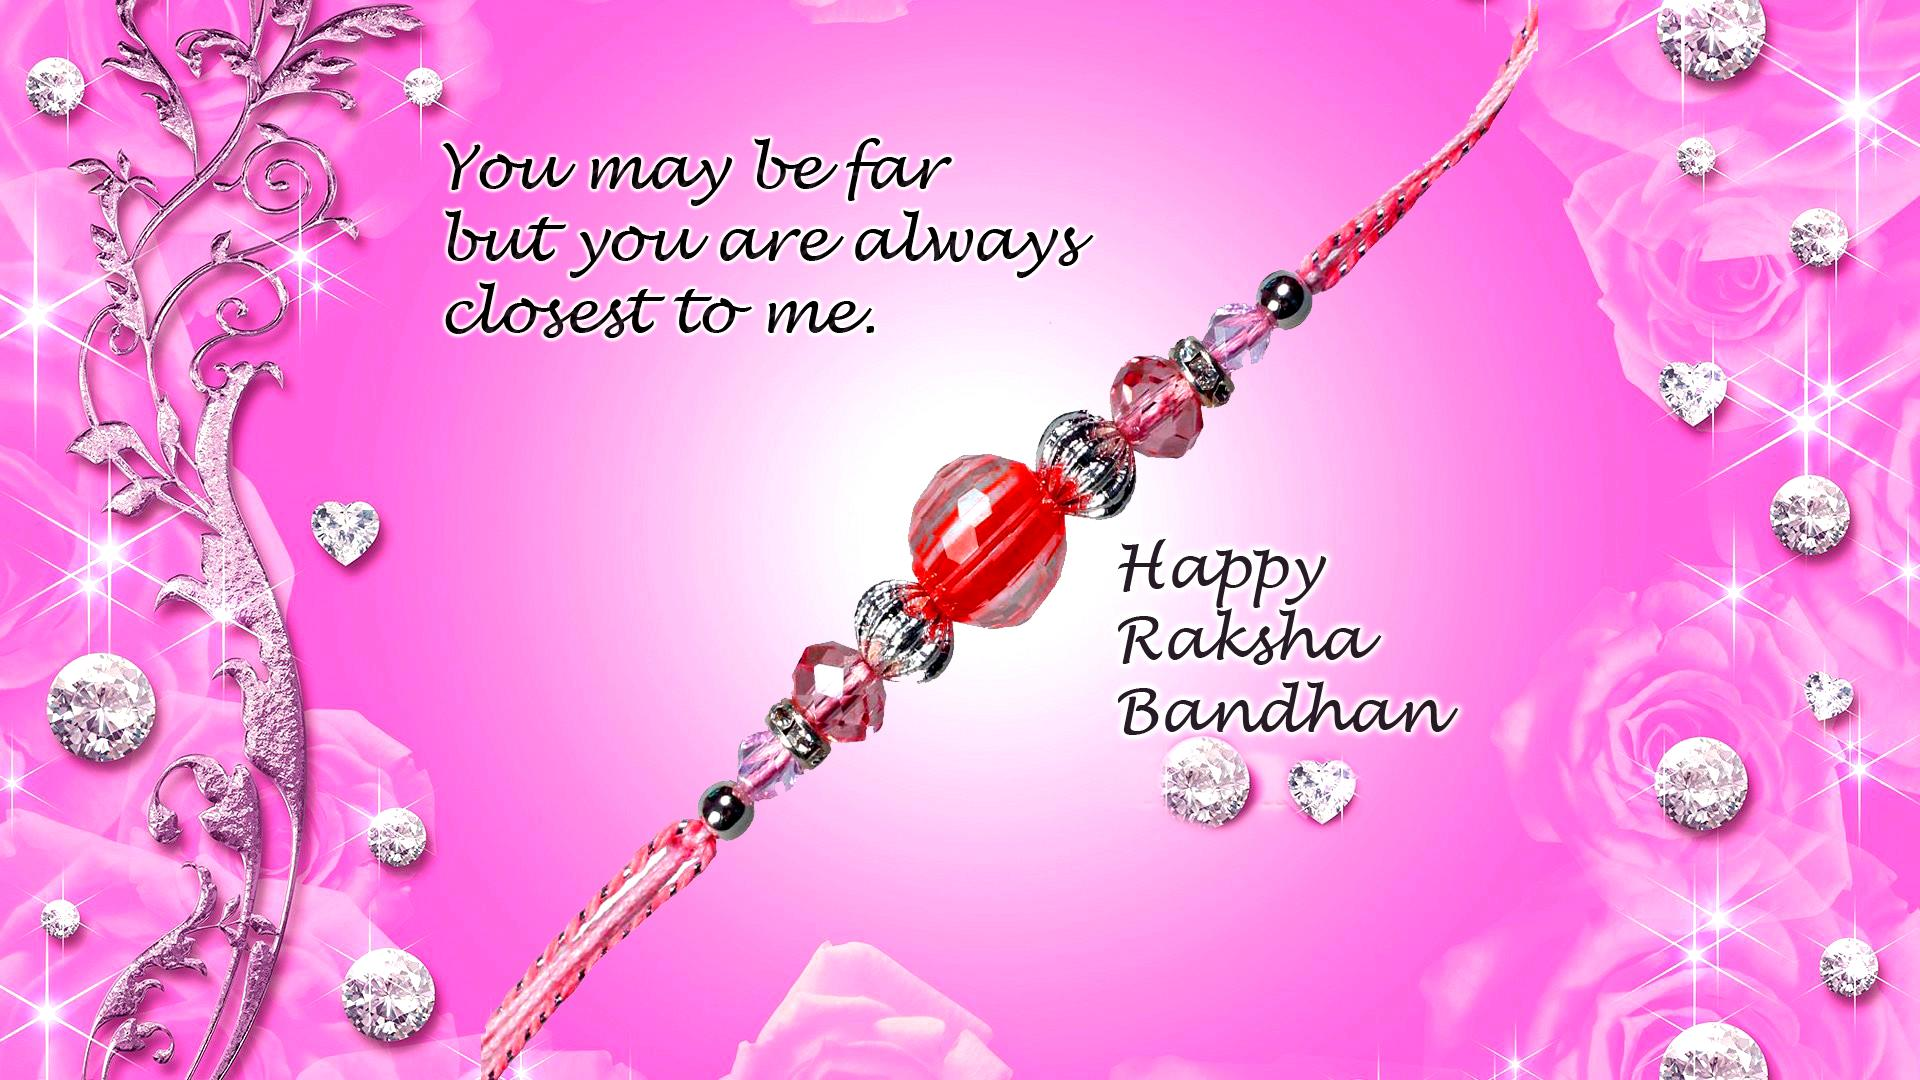 raksha bandhan greeting background hd new desktop wallpaper